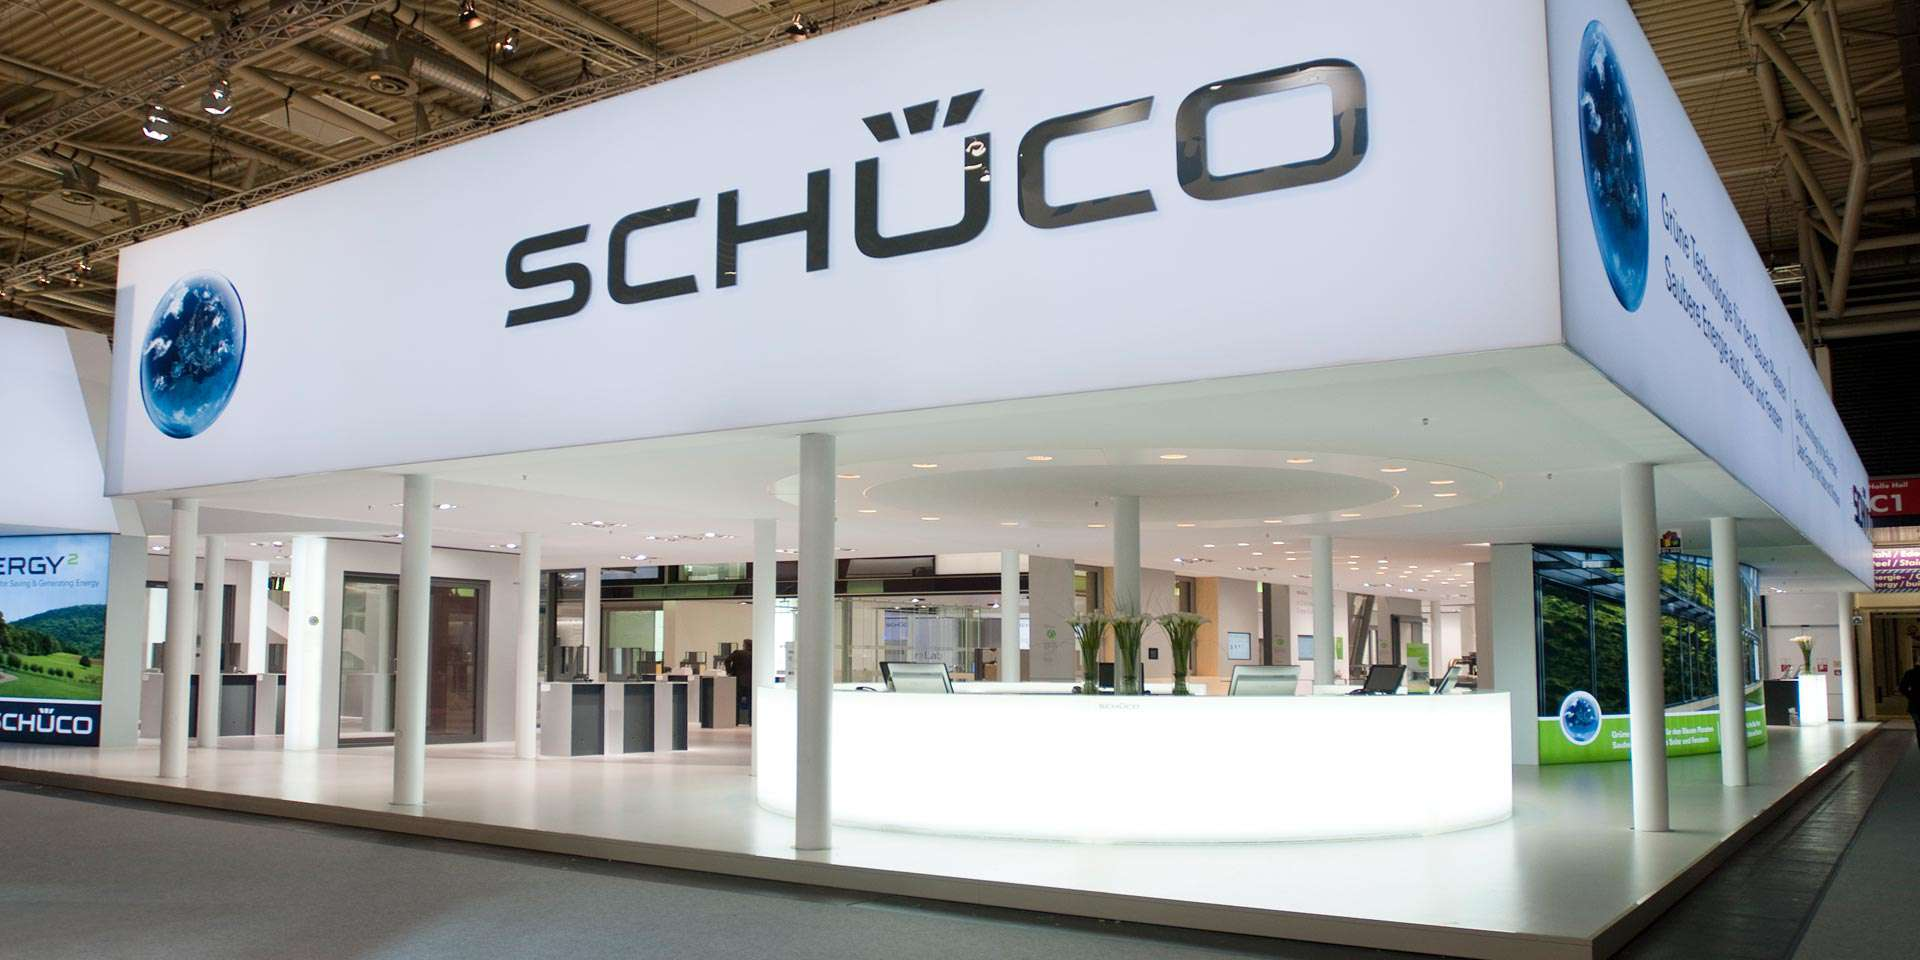 schueco 005 optimized